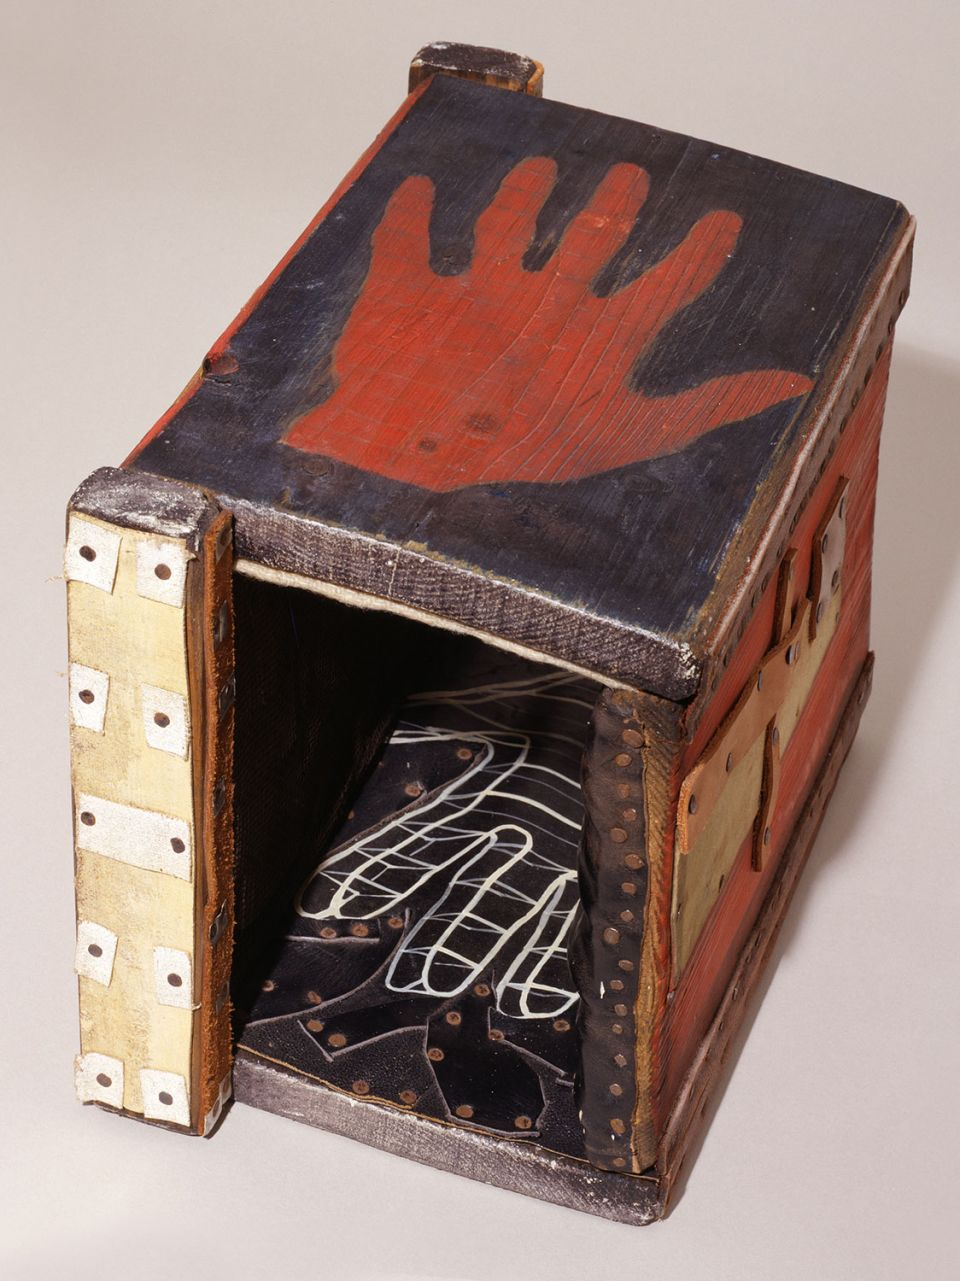 Paul Neagu, 'Tactile Object (Hand)' (1970, wood, metal, plastic, leather, textile, paper)